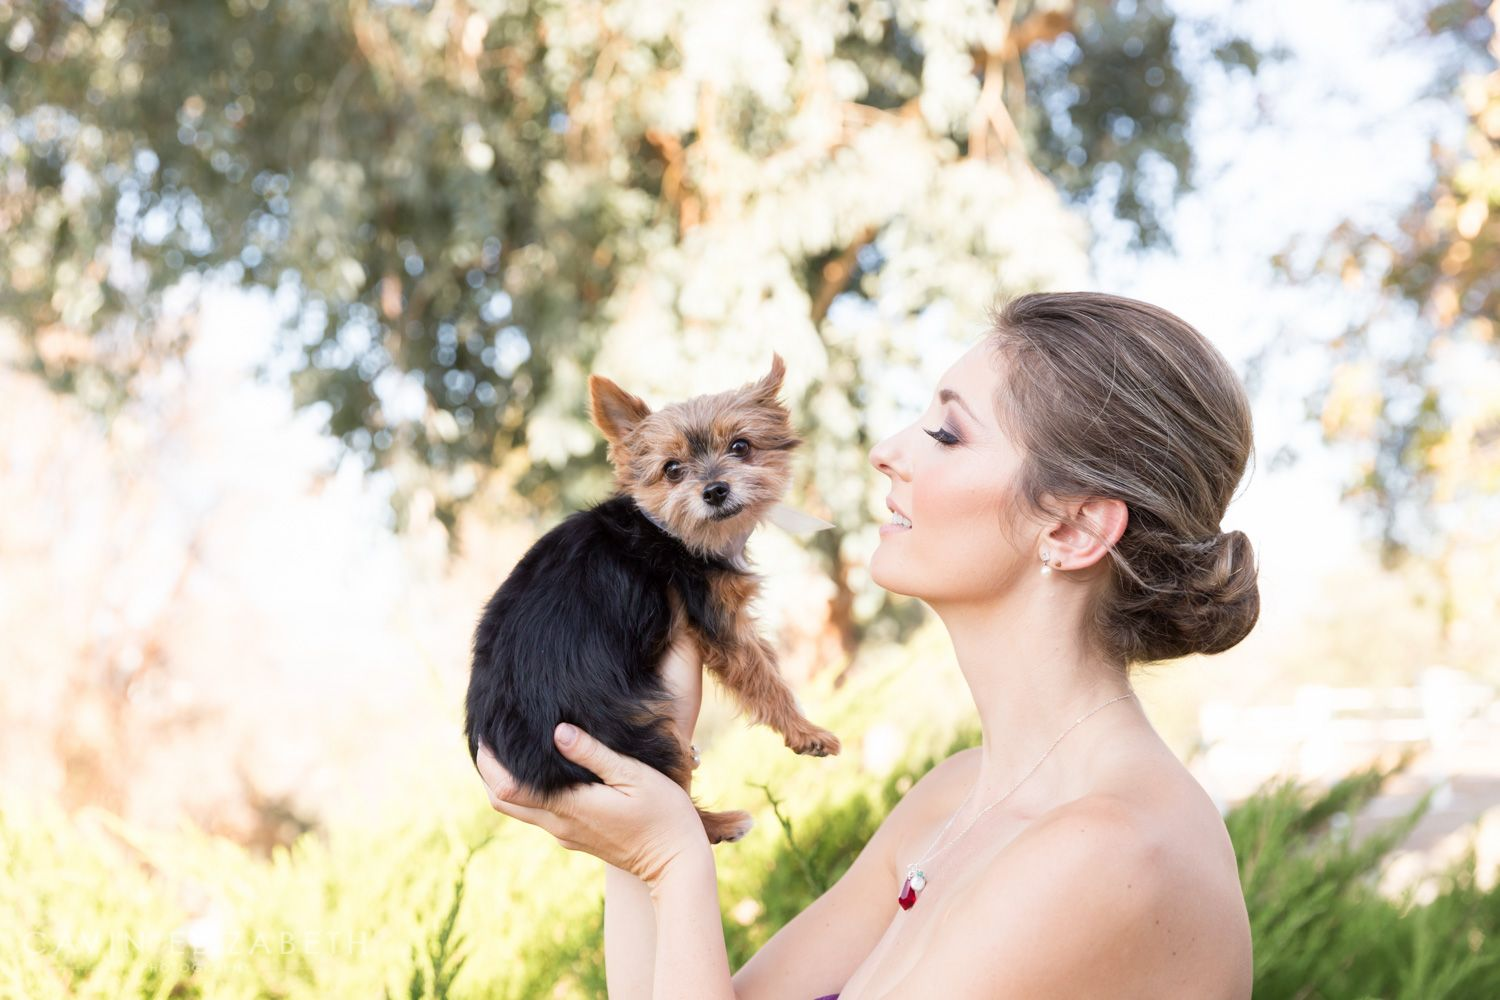 Tea Party Themed Wedding from a San Diego wedding photographer. Wedding inspiration and planning ideas. Styled shoot in California. Adorable picture of a bride and dog, Cavin Elizabeth Photography